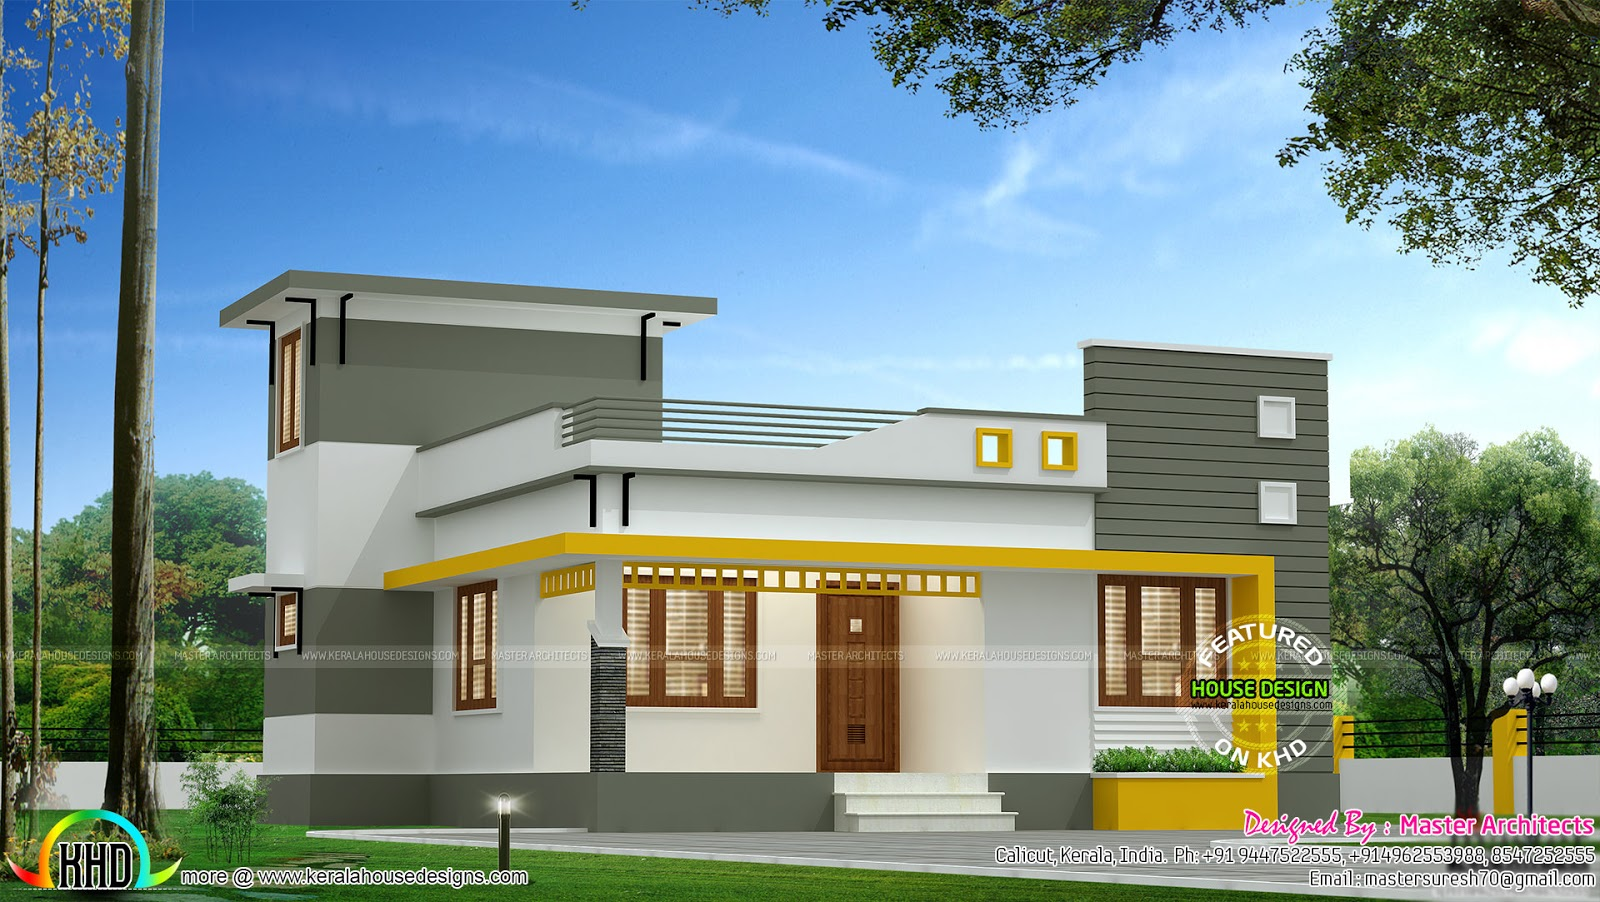 3 bedroom single floor modern architecture home kerala for One floor modern house